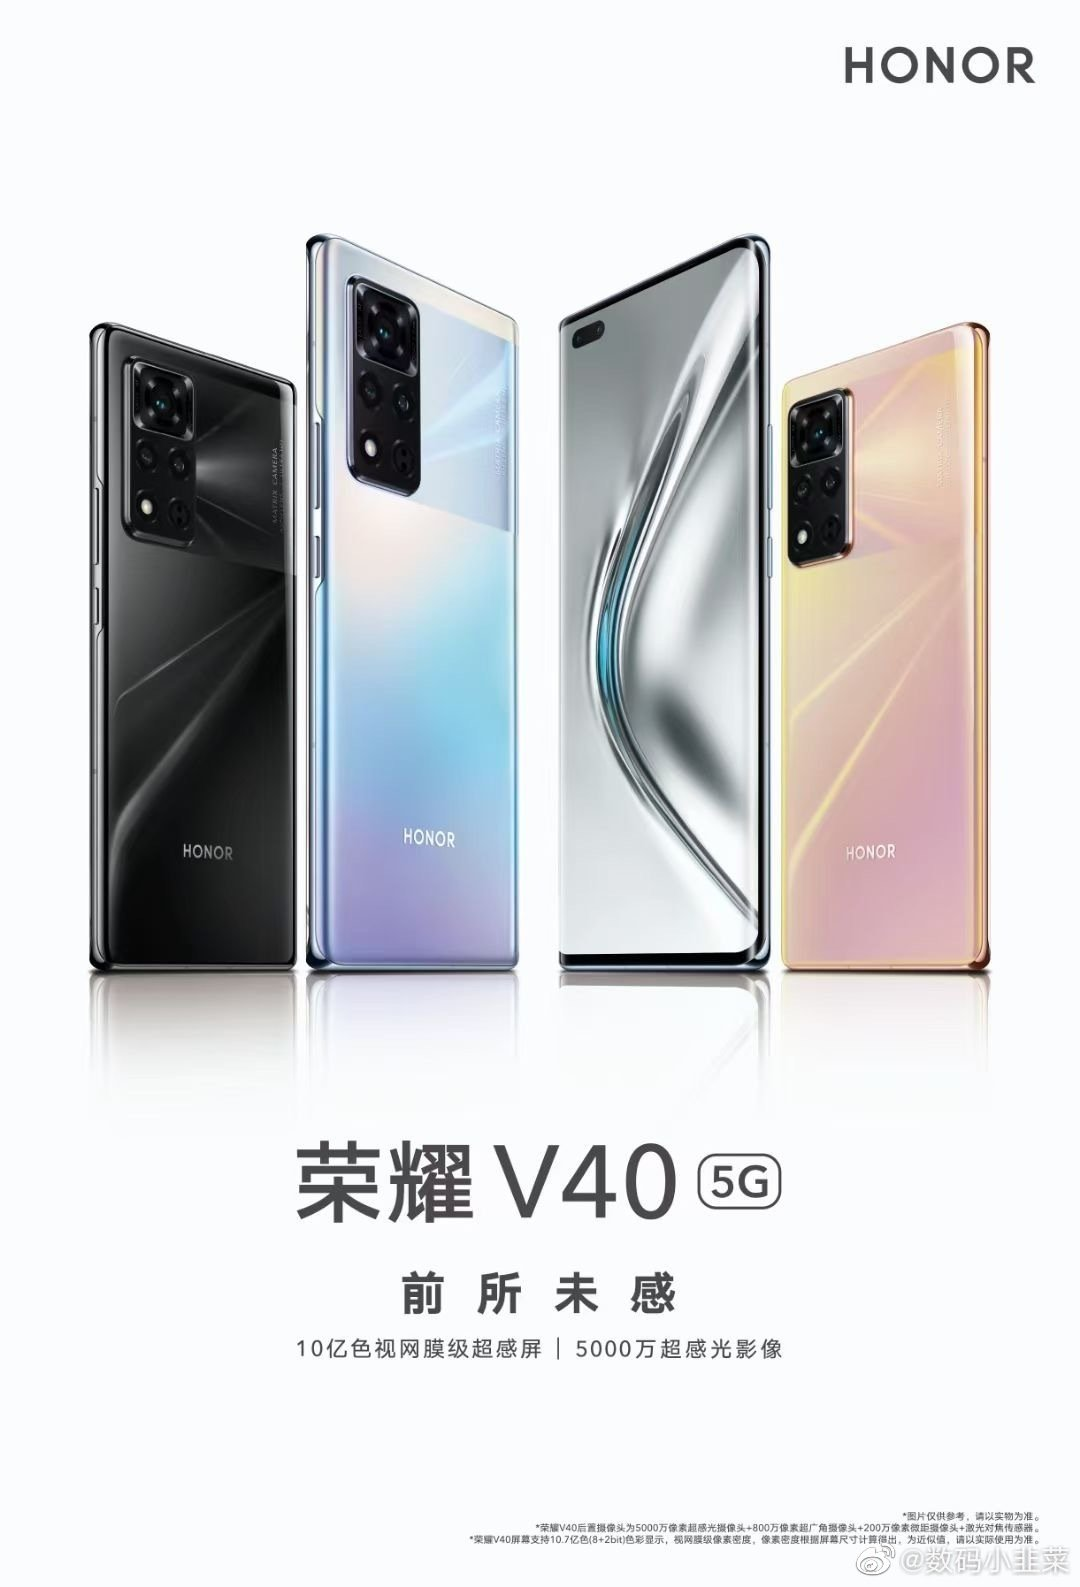 Honor V40's camera configurations revealed in a new leak